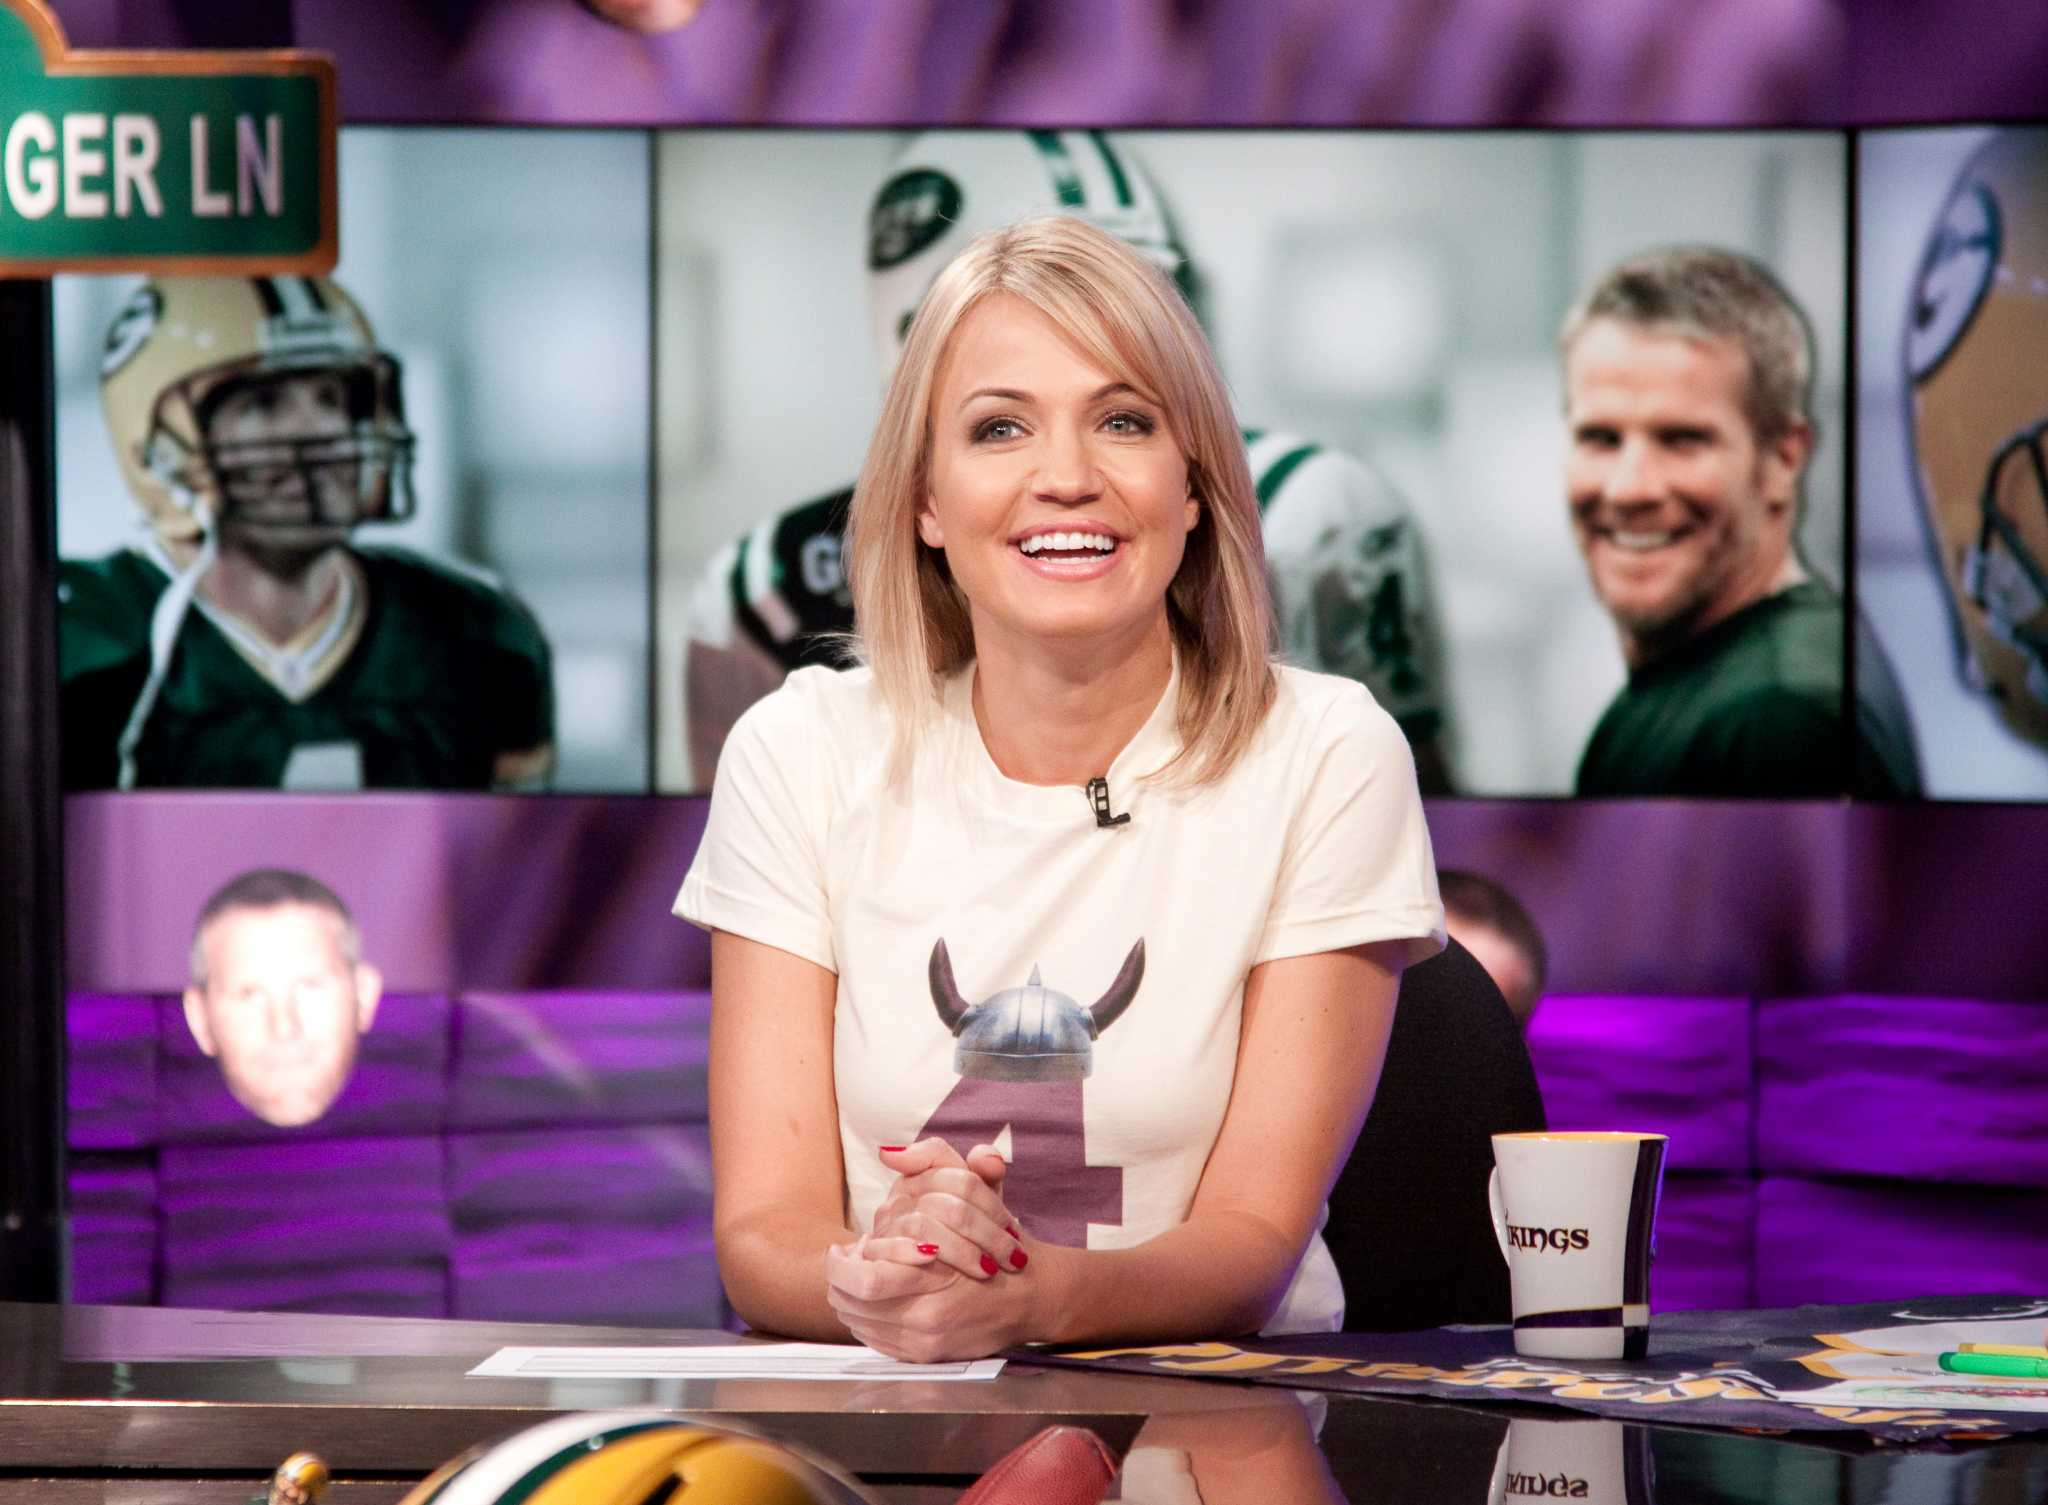 Michelle beadle dating 2020